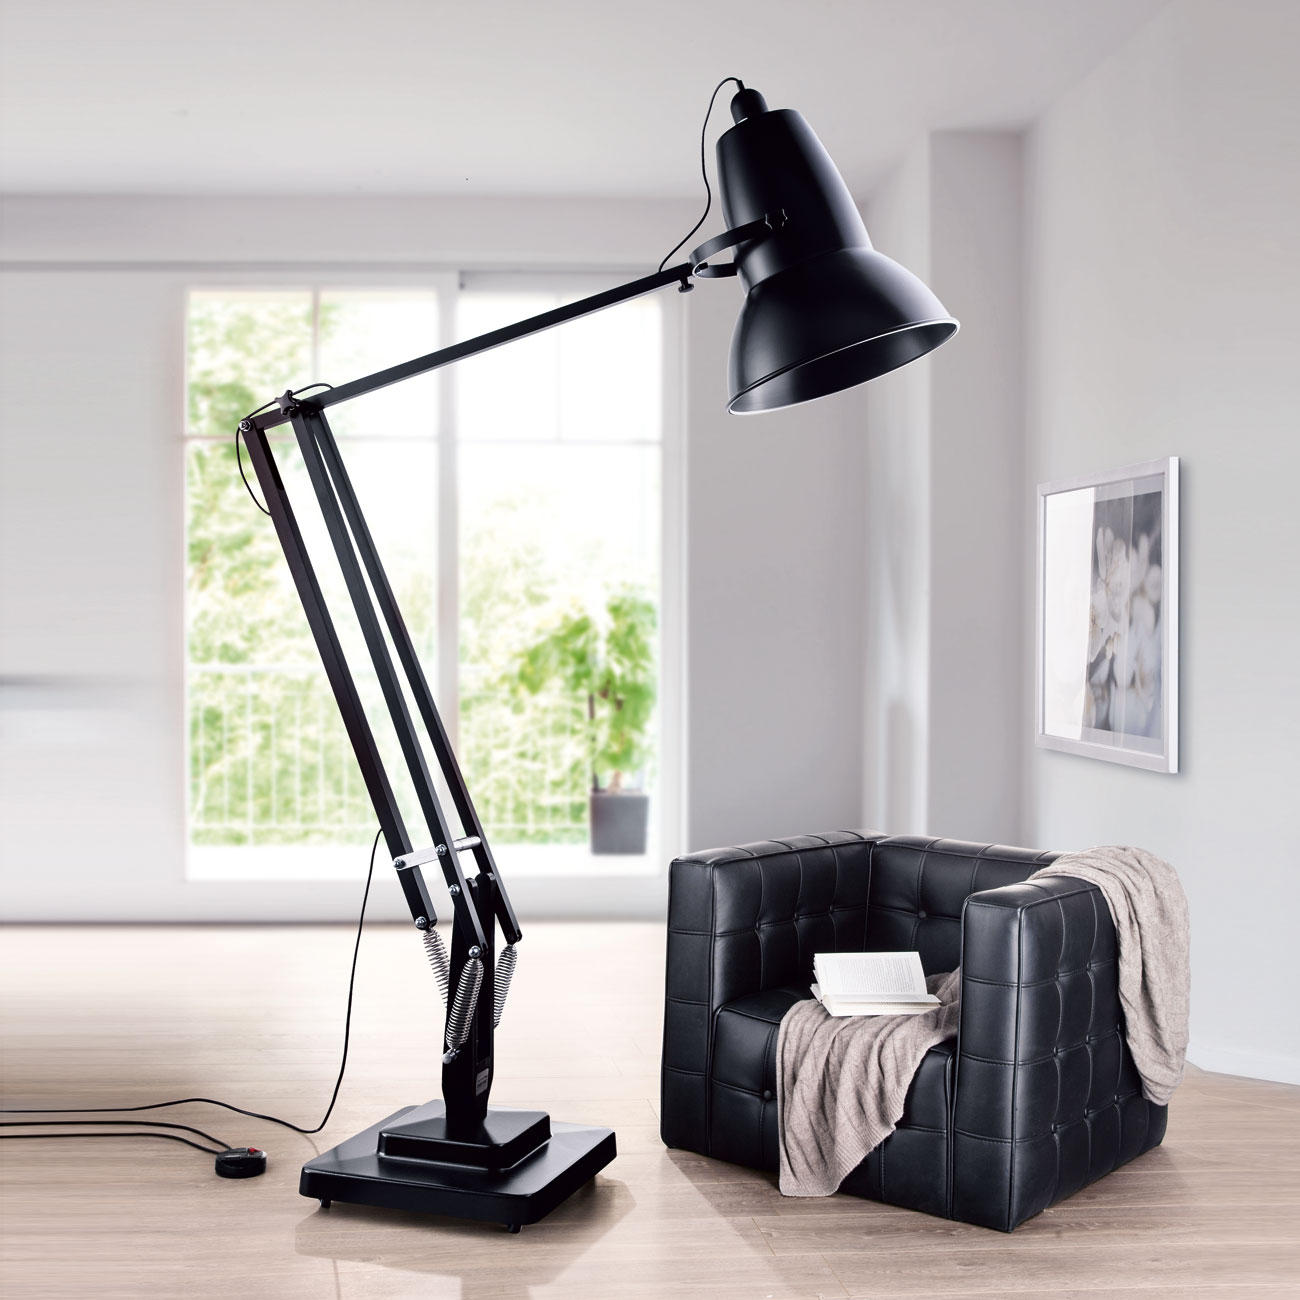 anglepoise stehleuchte giant 1227 mit 3 jahren garantie. Black Bedroom Furniture Sets. Home Design Ideas